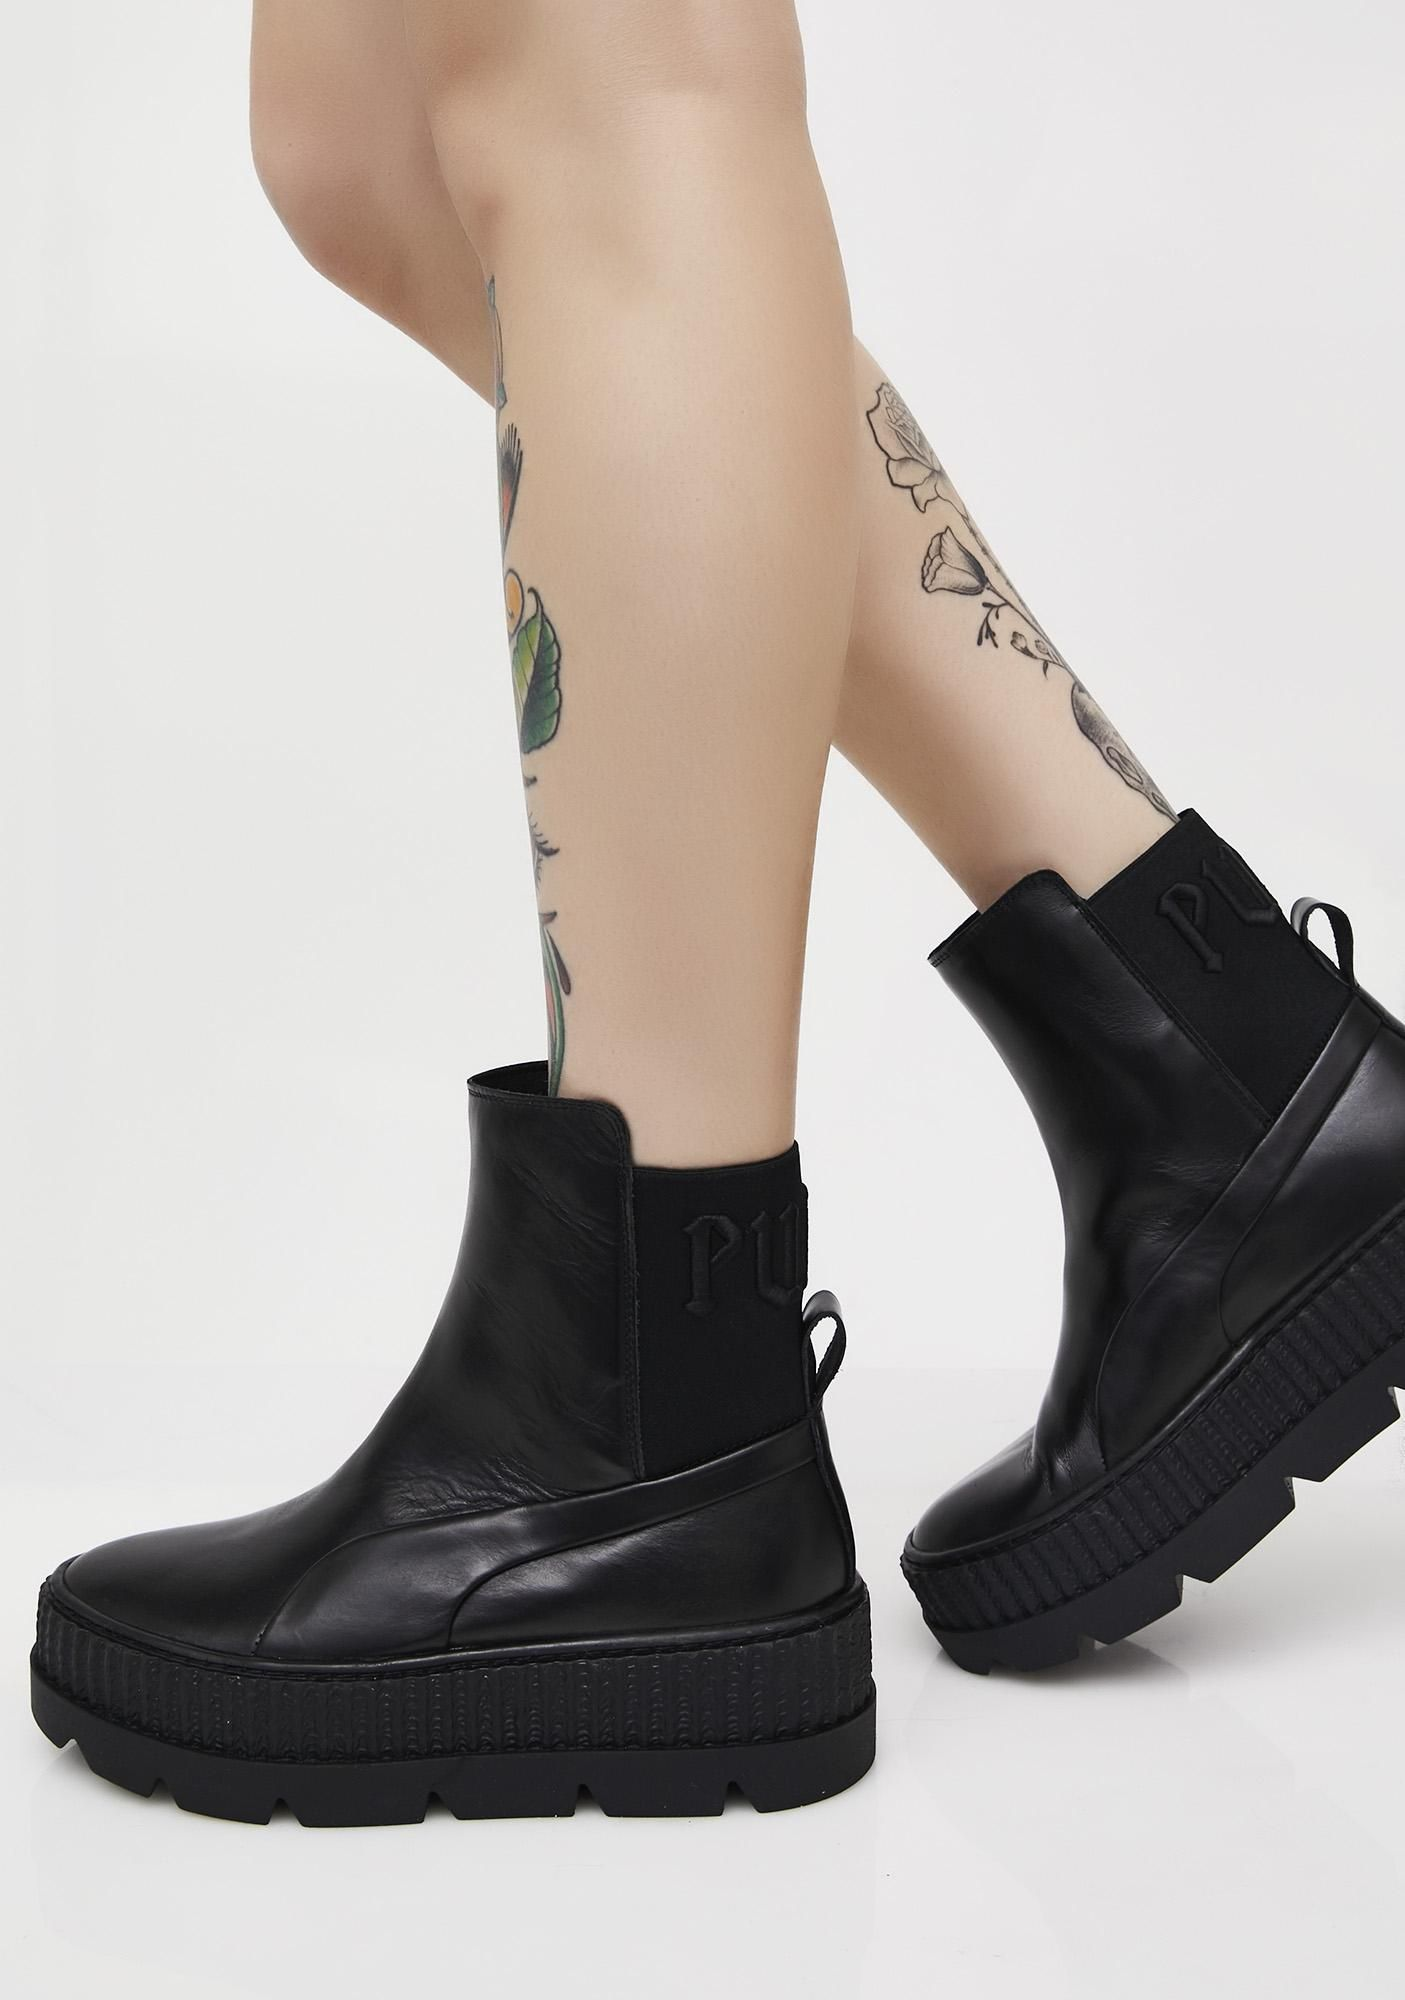 "18cfd708399c17 PUMA FENTY PUMA By Rihanna Chelsea Sneaker Boots got ya on another level.  These black sneaker boots have thikk soles and ""PUMA"" text on the back."